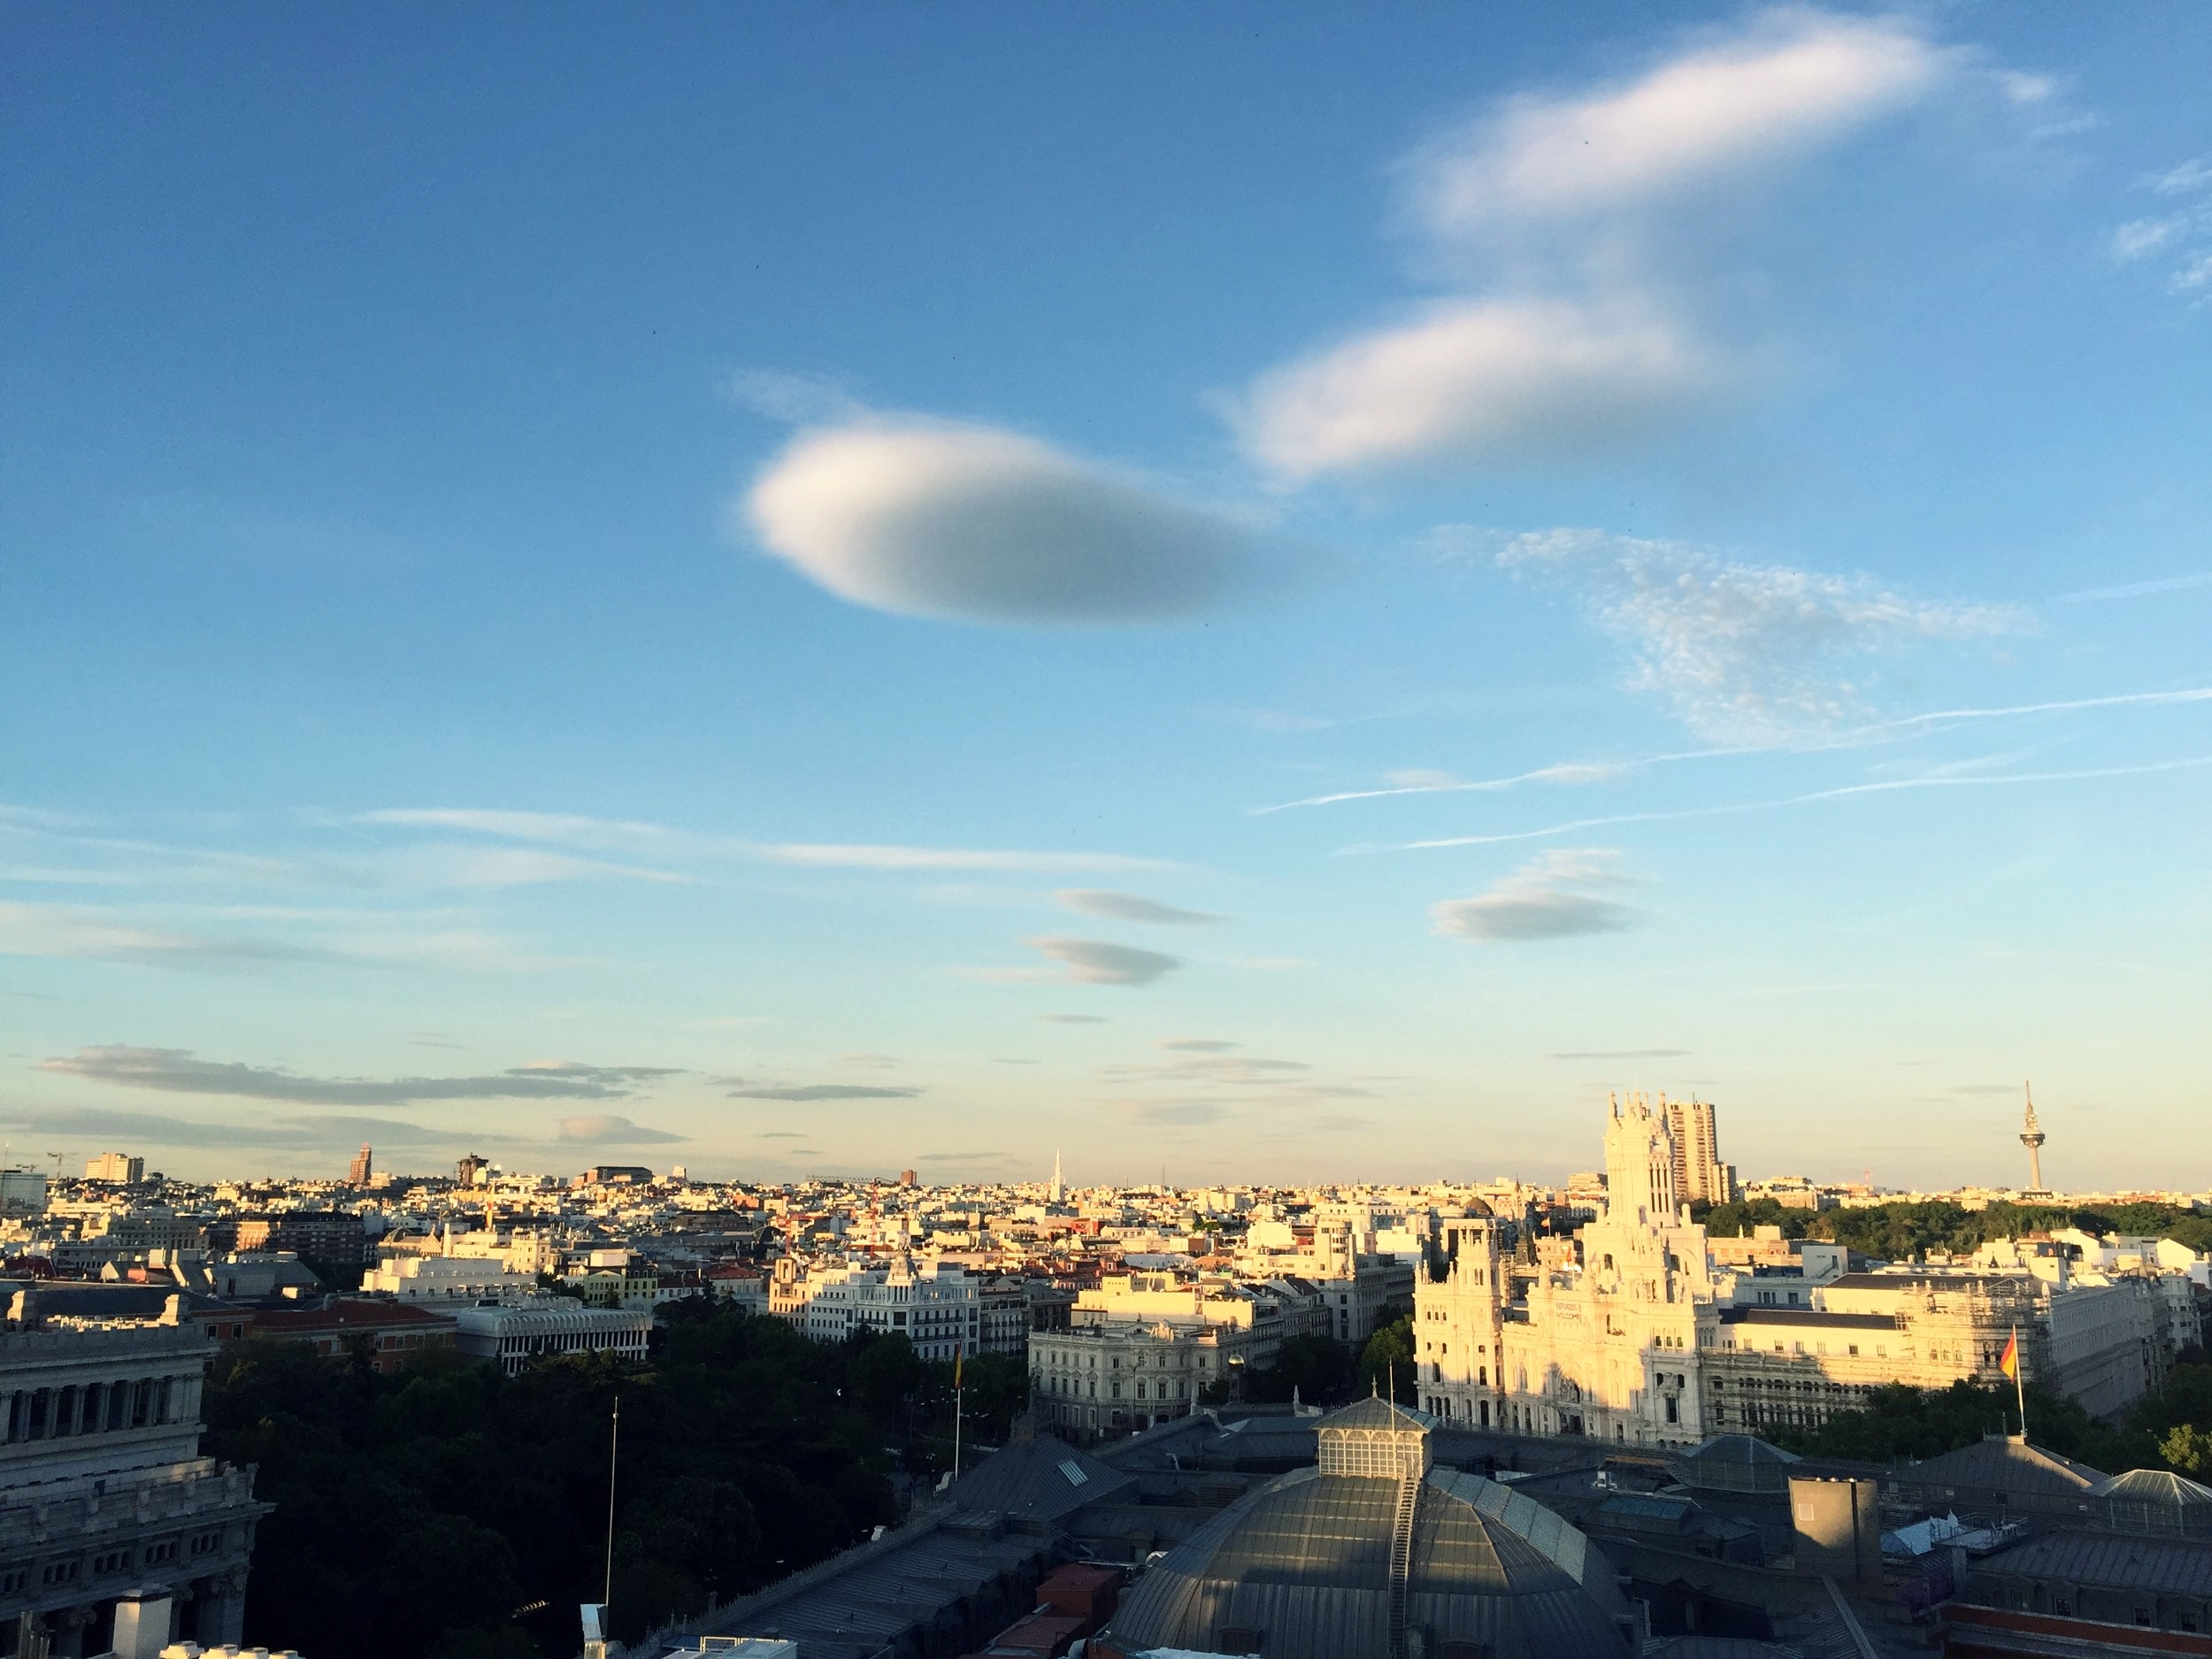 The stunning view from the Circulo de Bellas Artes